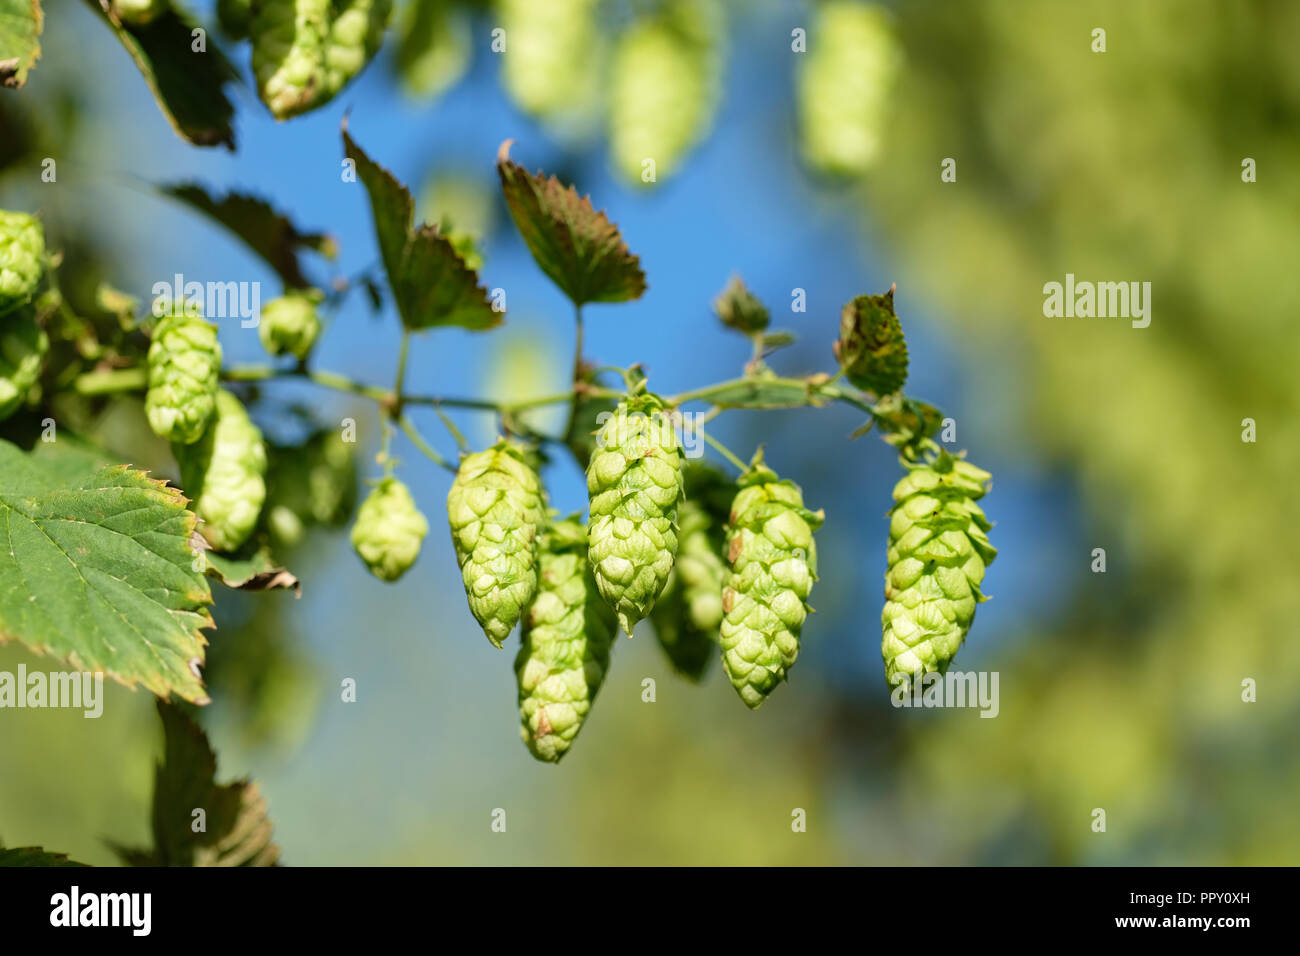 Stocks Farm, Suckley, Worcestershire - September 2018 -  Hops ready for harvest ( Jester variety ) in the fine Autumn sunshine with local temperatures of 16c - Approx 40% of this harvest will be exported to the USA - Photo Steven May / Alamy Live News - Stock Image